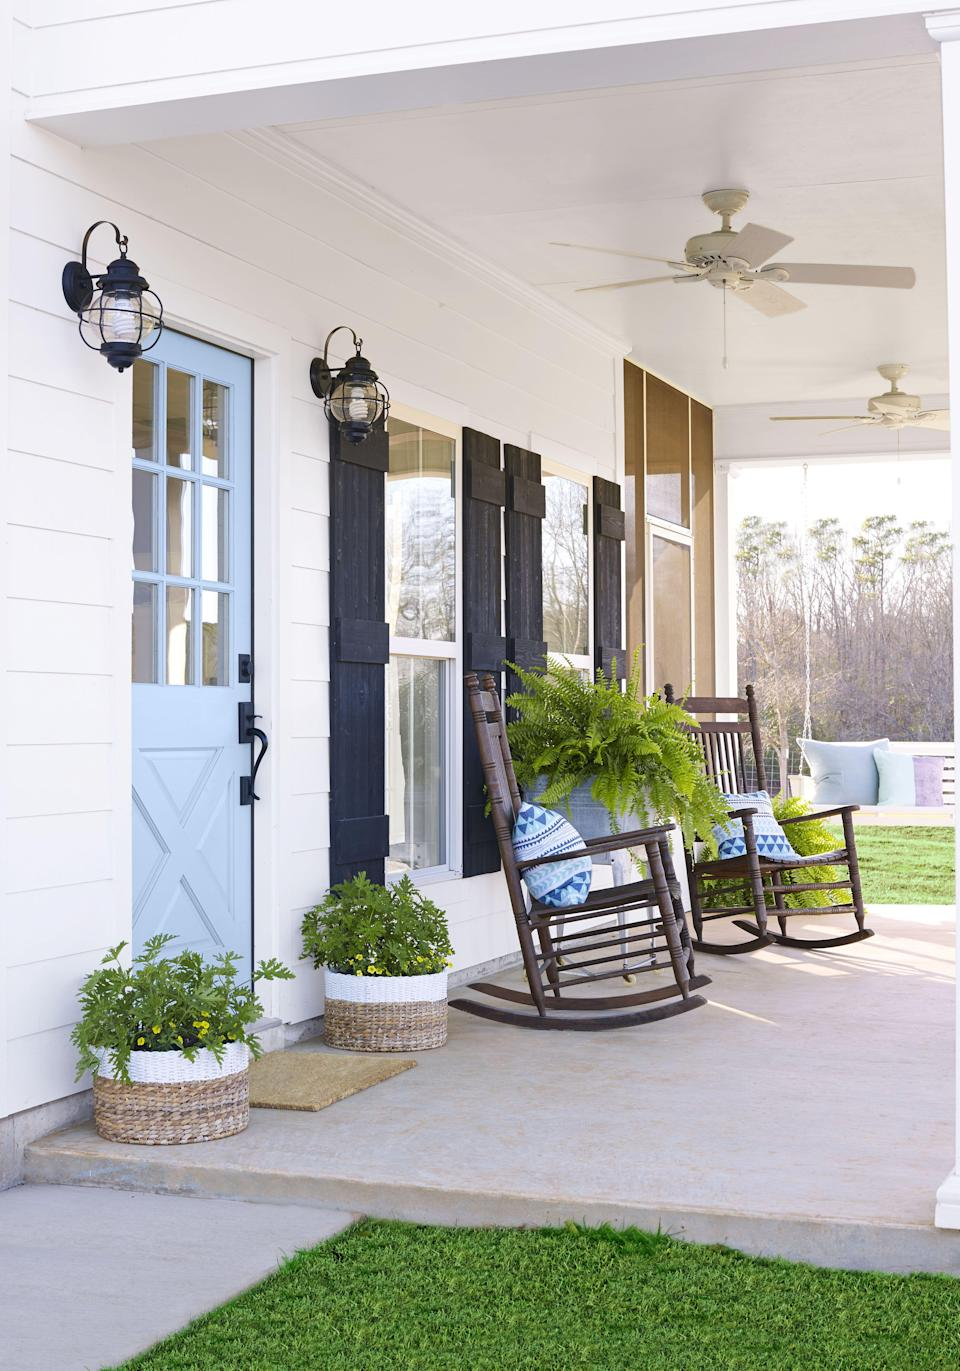 """<p>We're always looking for ways to make our outdoor spaces more comfortable and inviting. Sure, there are plenty of ways to keep busy in our own backyards, from tending our garden and weeding the flowerbeds to firing up the grill or even setting up an <a href=""""http://www.countryliving.com/entertaining/a32945750/outdoor-movie-theater/"""" rel=""""nofollow noopener"""" target=""""_blank"""" data-ylk=""""slk:outdoor movie theater"""" class=""""link rapid-noclick-resp"""">outdoor movie theater</a> for the kids. But once all of that work is done, you're ready to relax, and you'll be looking for a comfortable place to take a load off. When you're considering your options for your <a href=""""http://www.countryliving.com/gardening/garden-ideas/g1336/porch-and-patio-decorating-ideas/"""" rel=""""nofollow noopener"""" target=""""_blank"""" data-ylk=""""slk:porch and patio decorating ideas"""" class=""""link rapid-noclick-resp"""">porch and patio decorating ideas</a>, you're sure to think about <a href=""""http://www.countryliving.com/home-design/decorating-ideas/g28335824/best-adirondack-chair/"""" rel=""""nofollow noopener"""" target=""""_blank"""" data-ylk=""""slk:Adironack chairs"""" class=""""link rapid-noclick-resp"""">Adironack chairs</a>, old-school <a href=""""http://www.countryliving.com/shopping/g32700041/best-lawn-chairs/"""" rel=""""nofollow noopener"""" target=""""_blank"""" data-ylk=""""slk:lawn chairs"""" class=""""link rapid-noclick-resp"""">lawn chairs</a>, and even <a href=""""http://www.countryliving.com/home-design/decorating-ideas/g32815195/best-porch-swings/"""" rel=""""nofollow noopener"""" target=""""_blank"""" data-ylk=""""slk:porch swings"""" class=""""link rapid-noclick-resp"""">porch swings</a>. And there's a place for all of those cozy outdoor seating options. But when we imagine of a lazy summer afternoon, whiling away the day with a gold of ice-cold lemonade, there's nothing better than the comfort of a rocking chair. </p><p>We found the 10 best patio rocking chairs for 2021, from classics like the one your grandma had on her porch to more modern styles that will have the neighbors askin"""